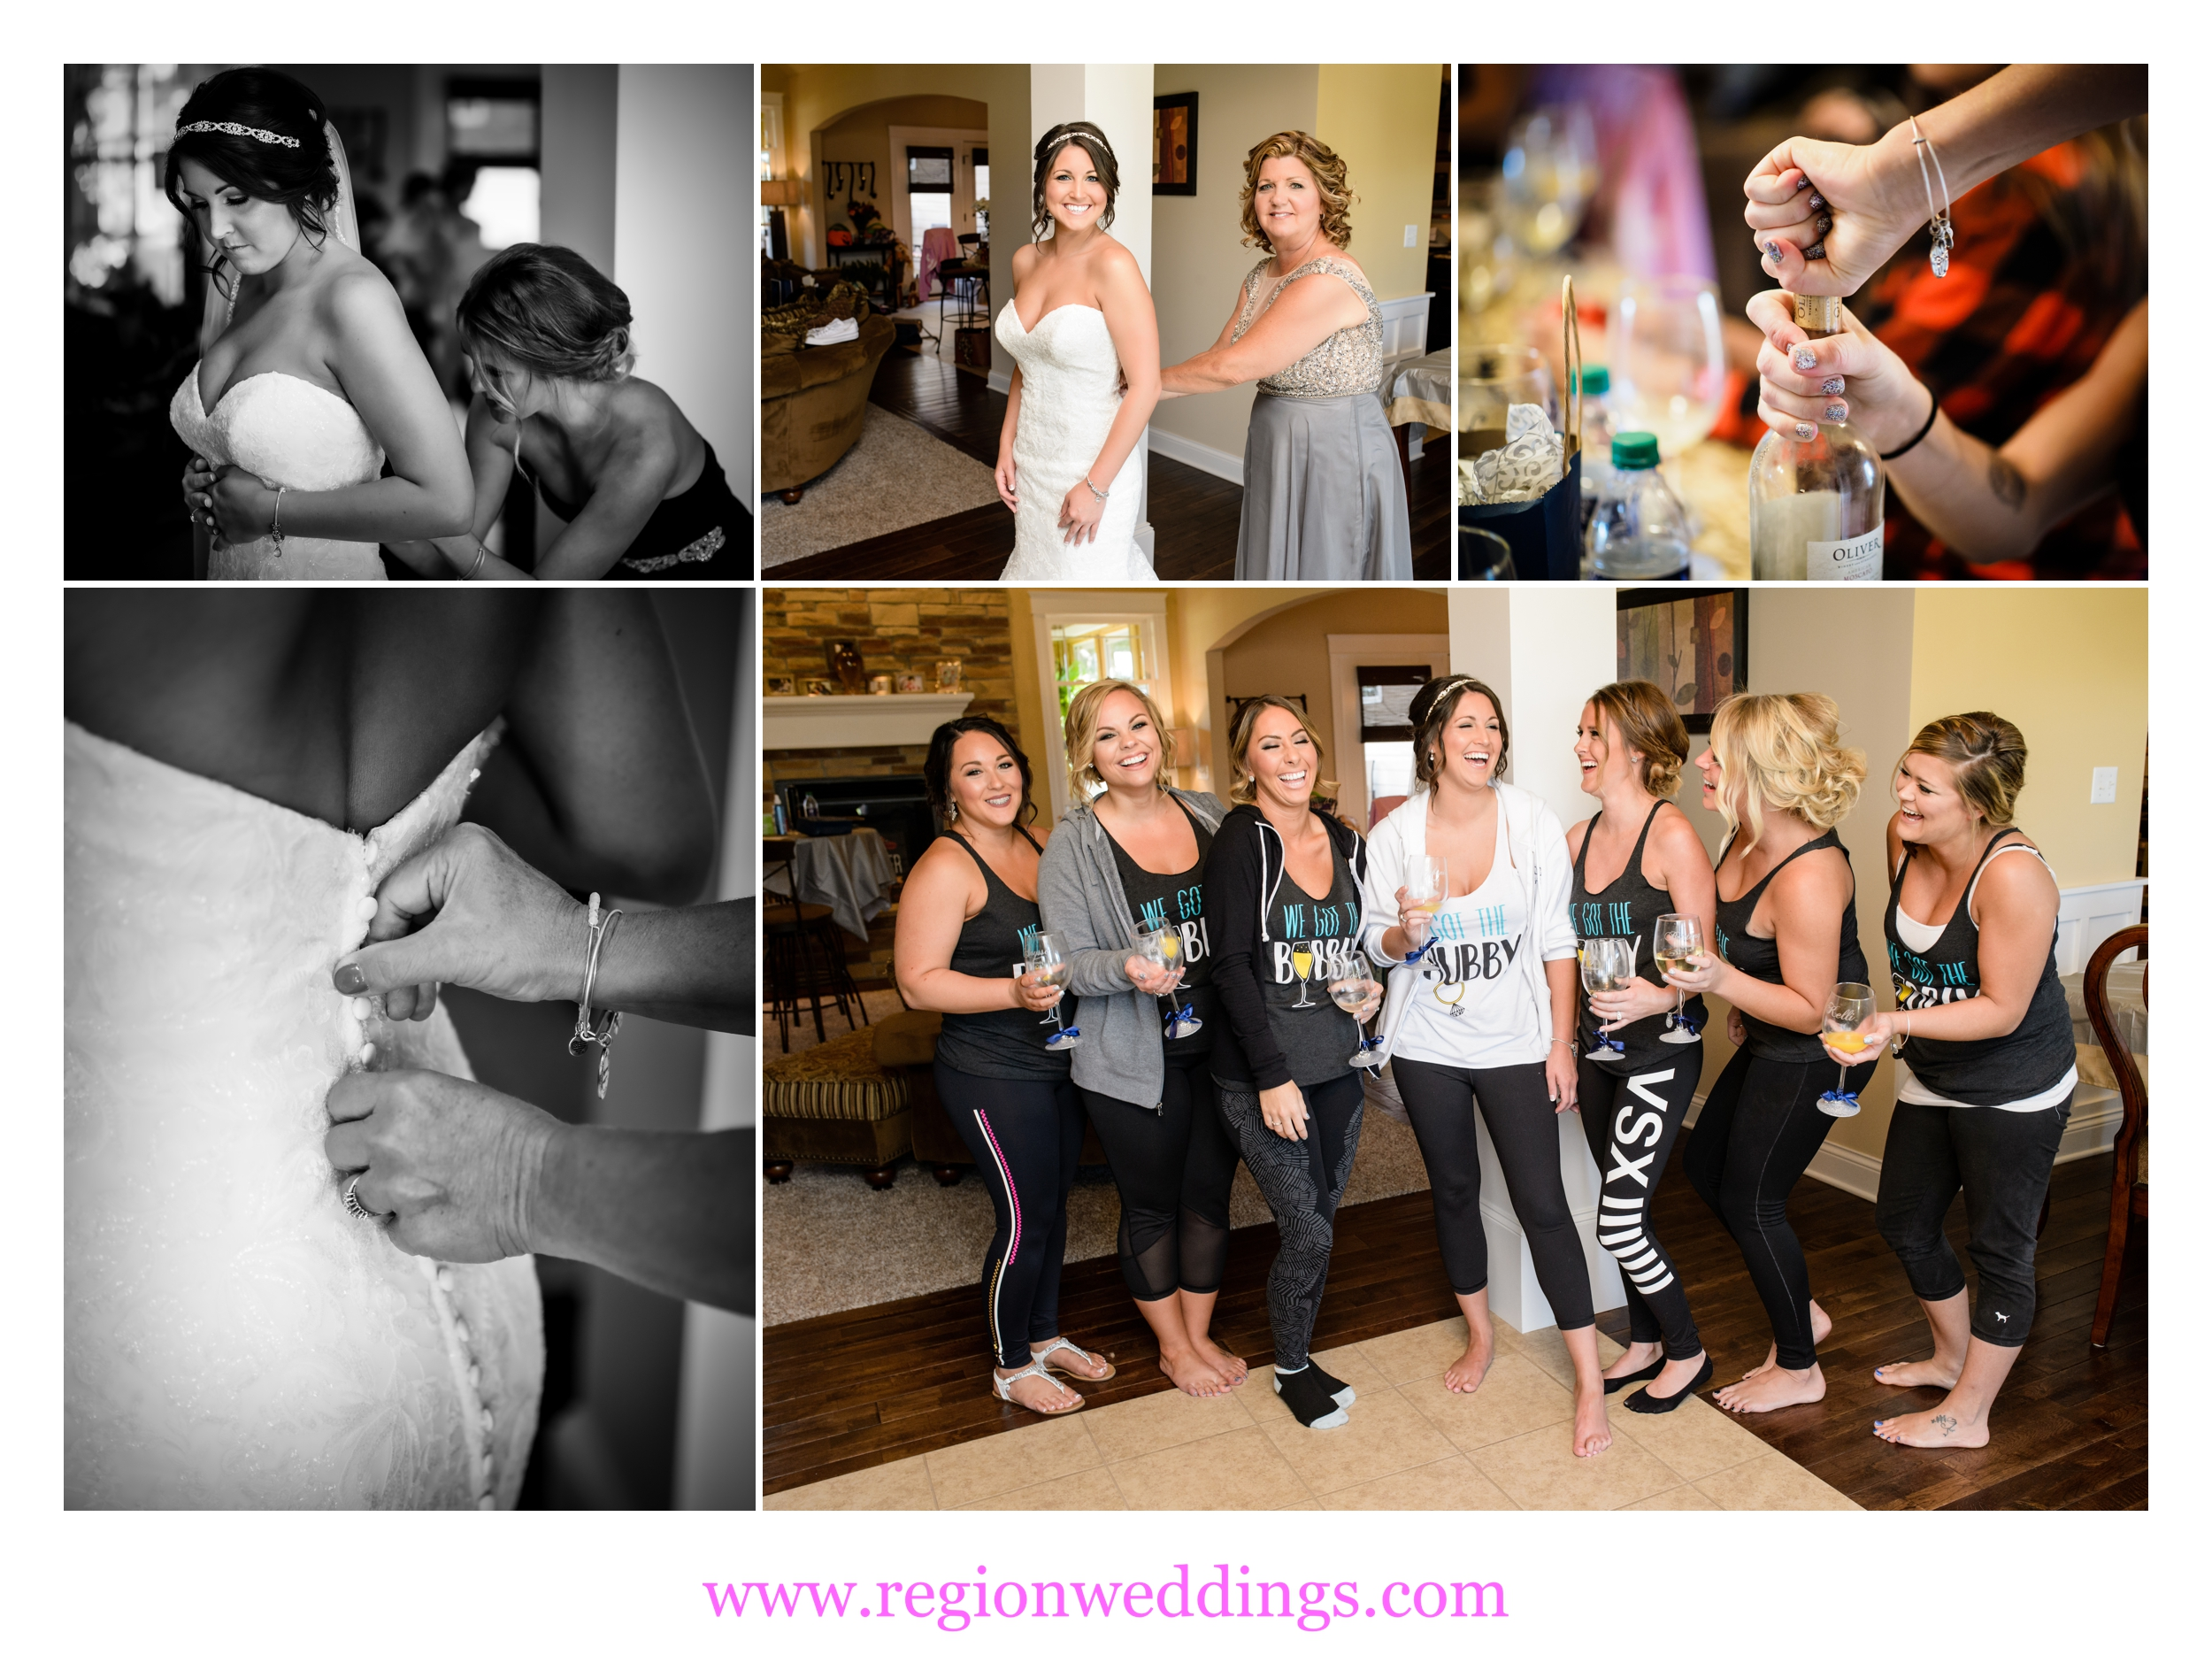 Laughter and spirits during bridal prep.